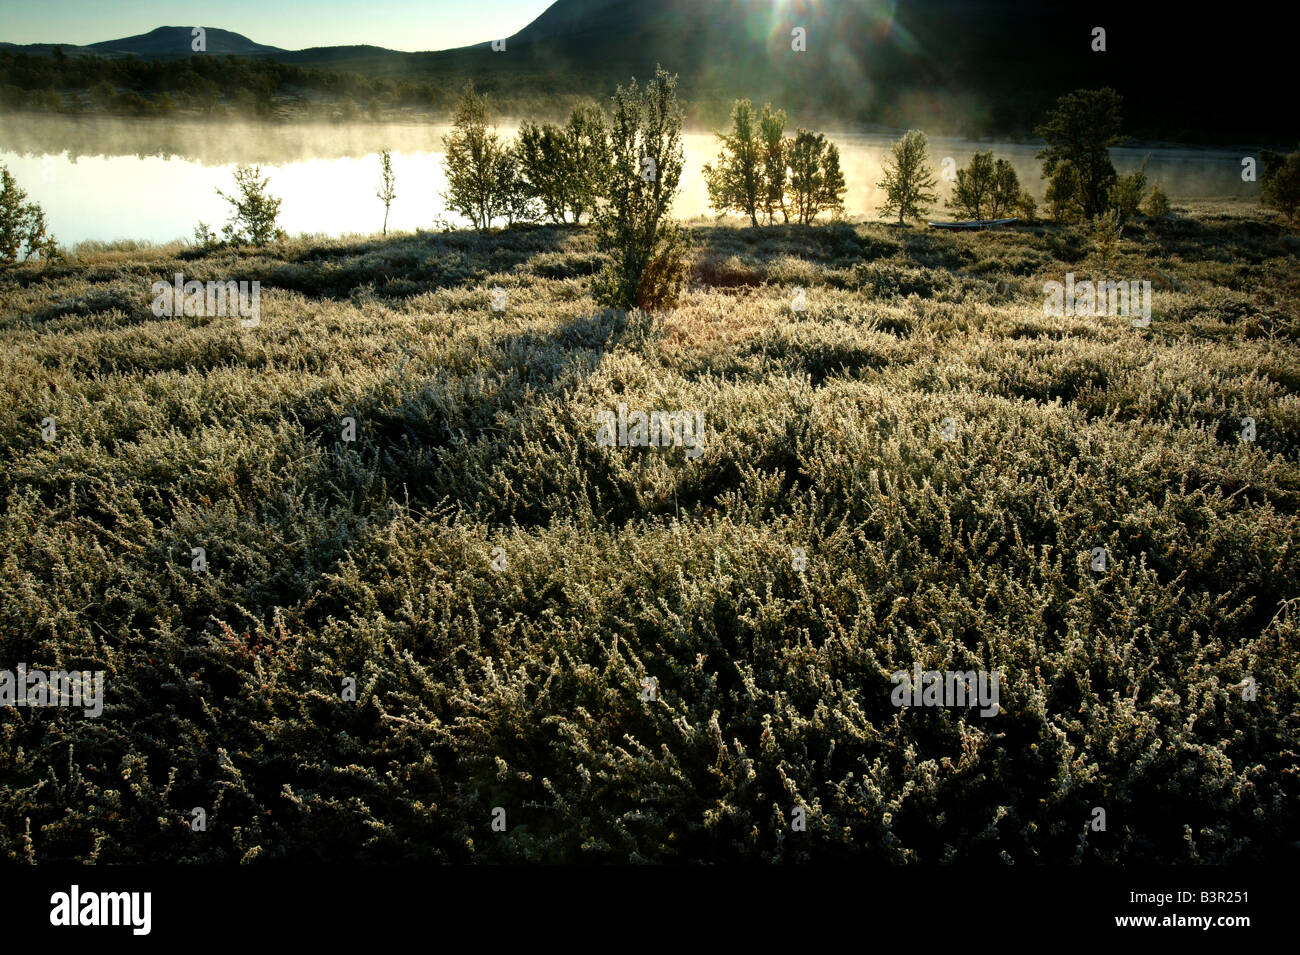 Sunrise and first autumn frost at Fokstumyra nature reserve at Dovrefjell, Dovre kommune, Norway. - Stock Image